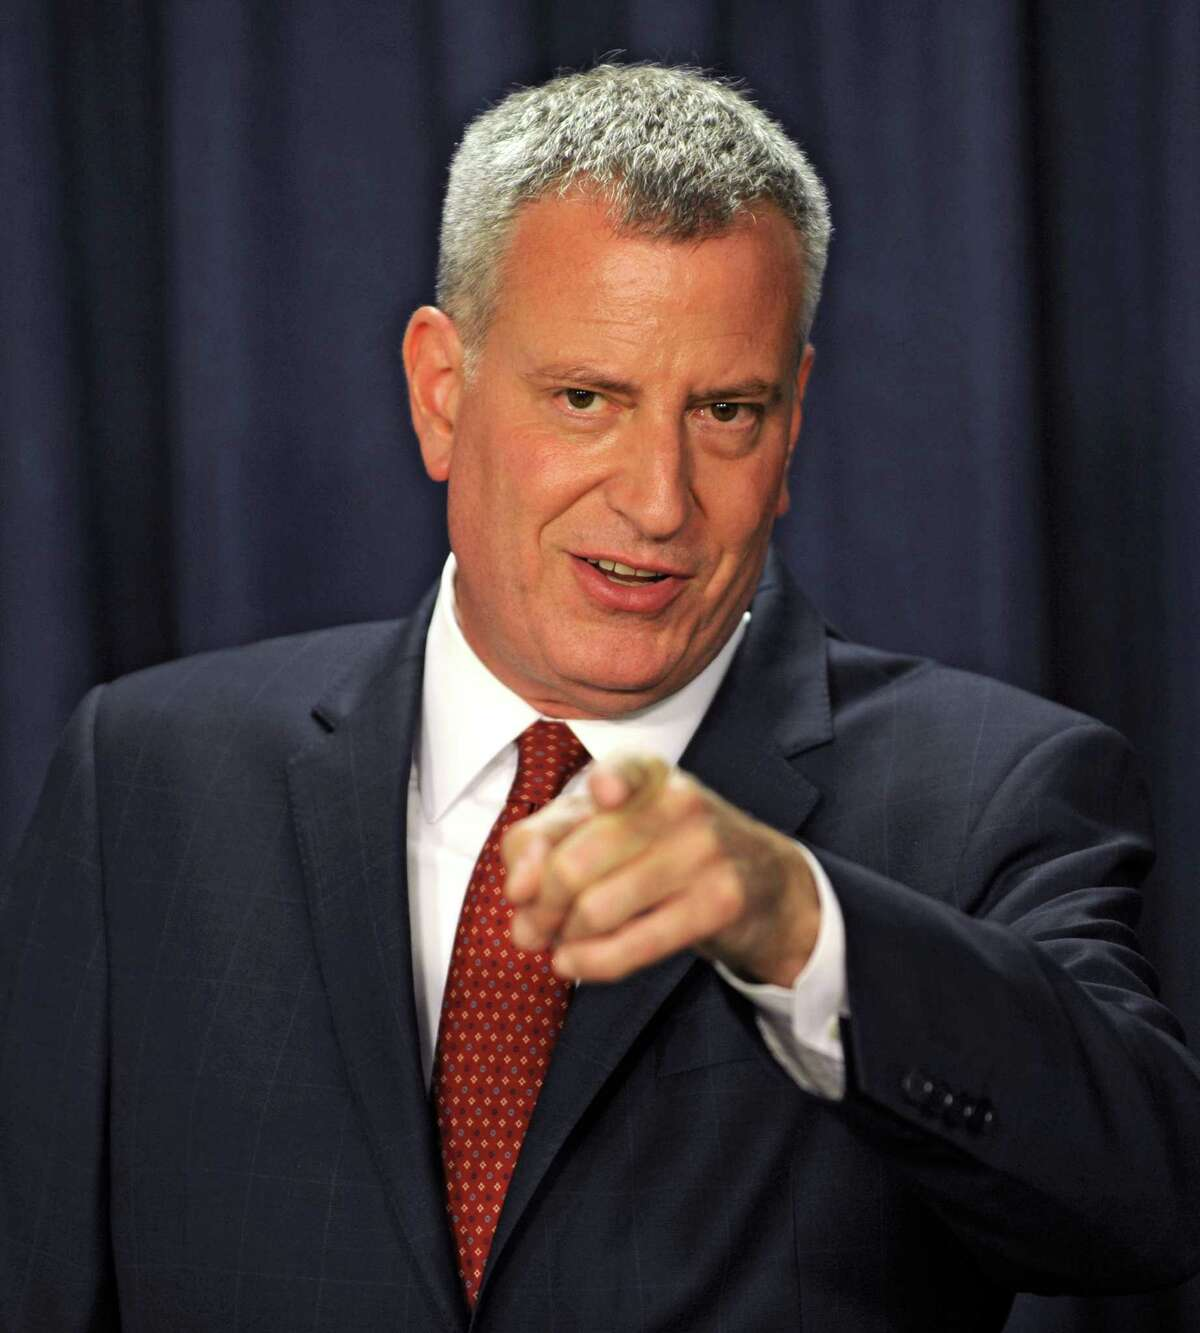 New York City mayor Bill de Blasio takes a question from the press as he talks about rent control and the 421a plan during a press conference in the Legislative Office Building on Wednesday, May 27, 2015 in Albany, N.Y. (Lori Van Buren / Times Union)